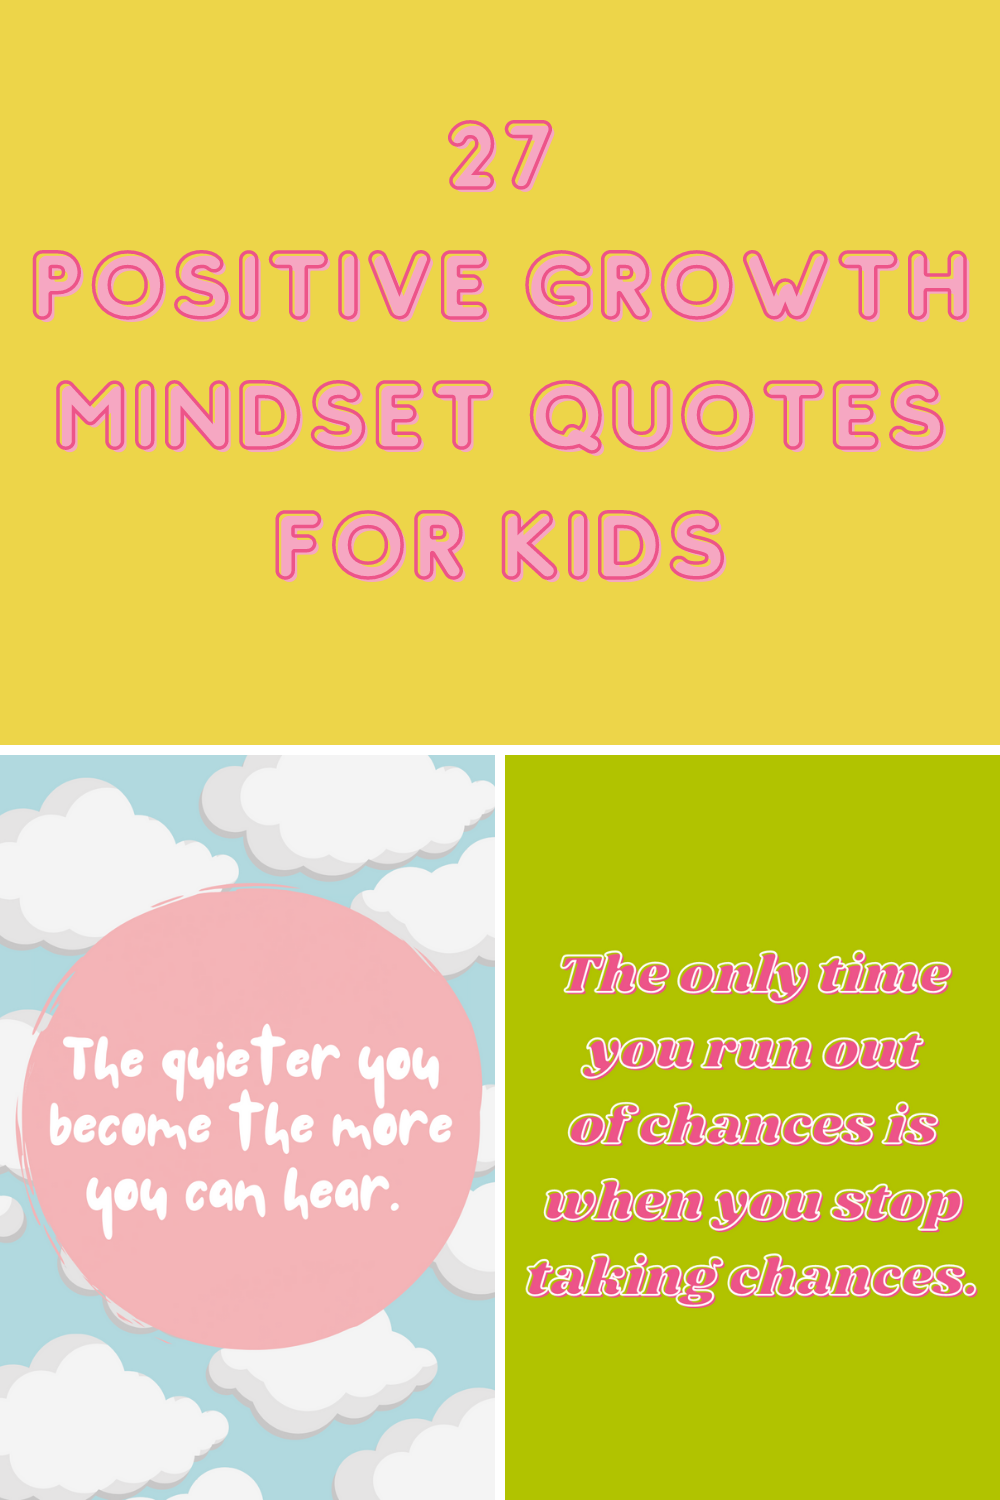 Growth Mindset Quotes for Kids